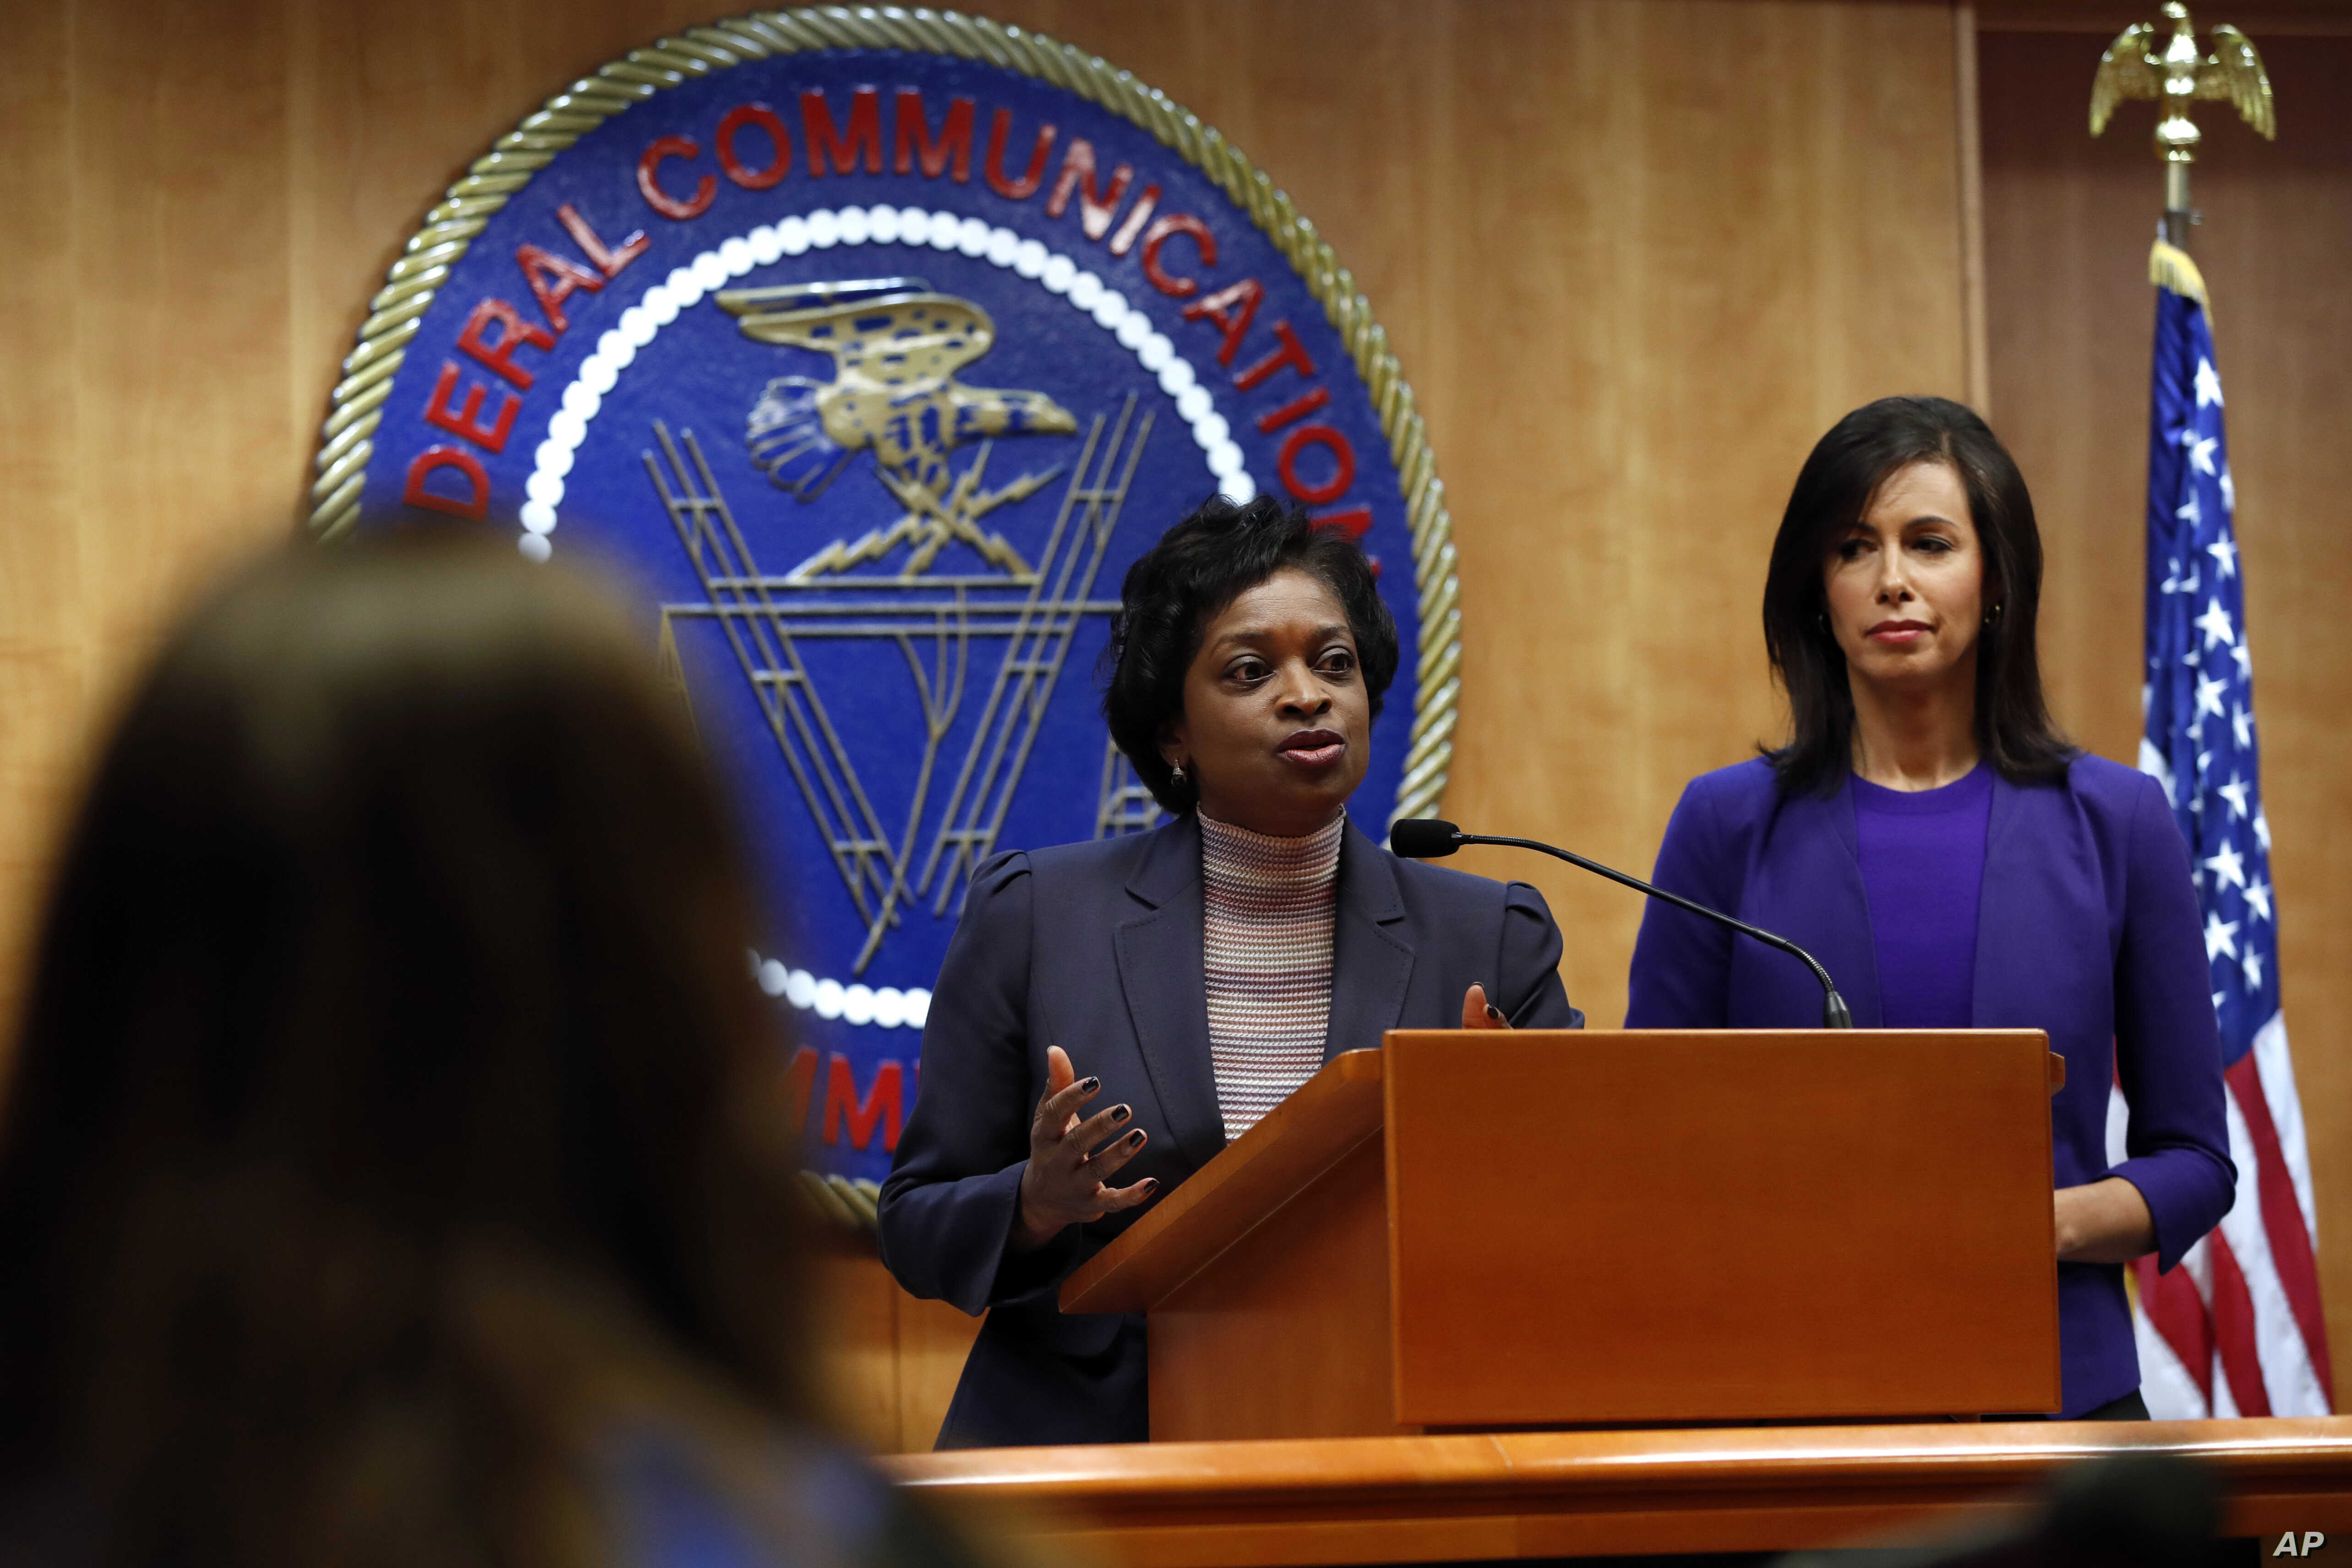 Federal Communications Commission (FCC) Commissioners Mignon Clyburn (L) and Jessica Rosenworcel, answer a question from the media after an FCC meeting to vote on net neutrality, Dec. 14, 2017, in Washington.